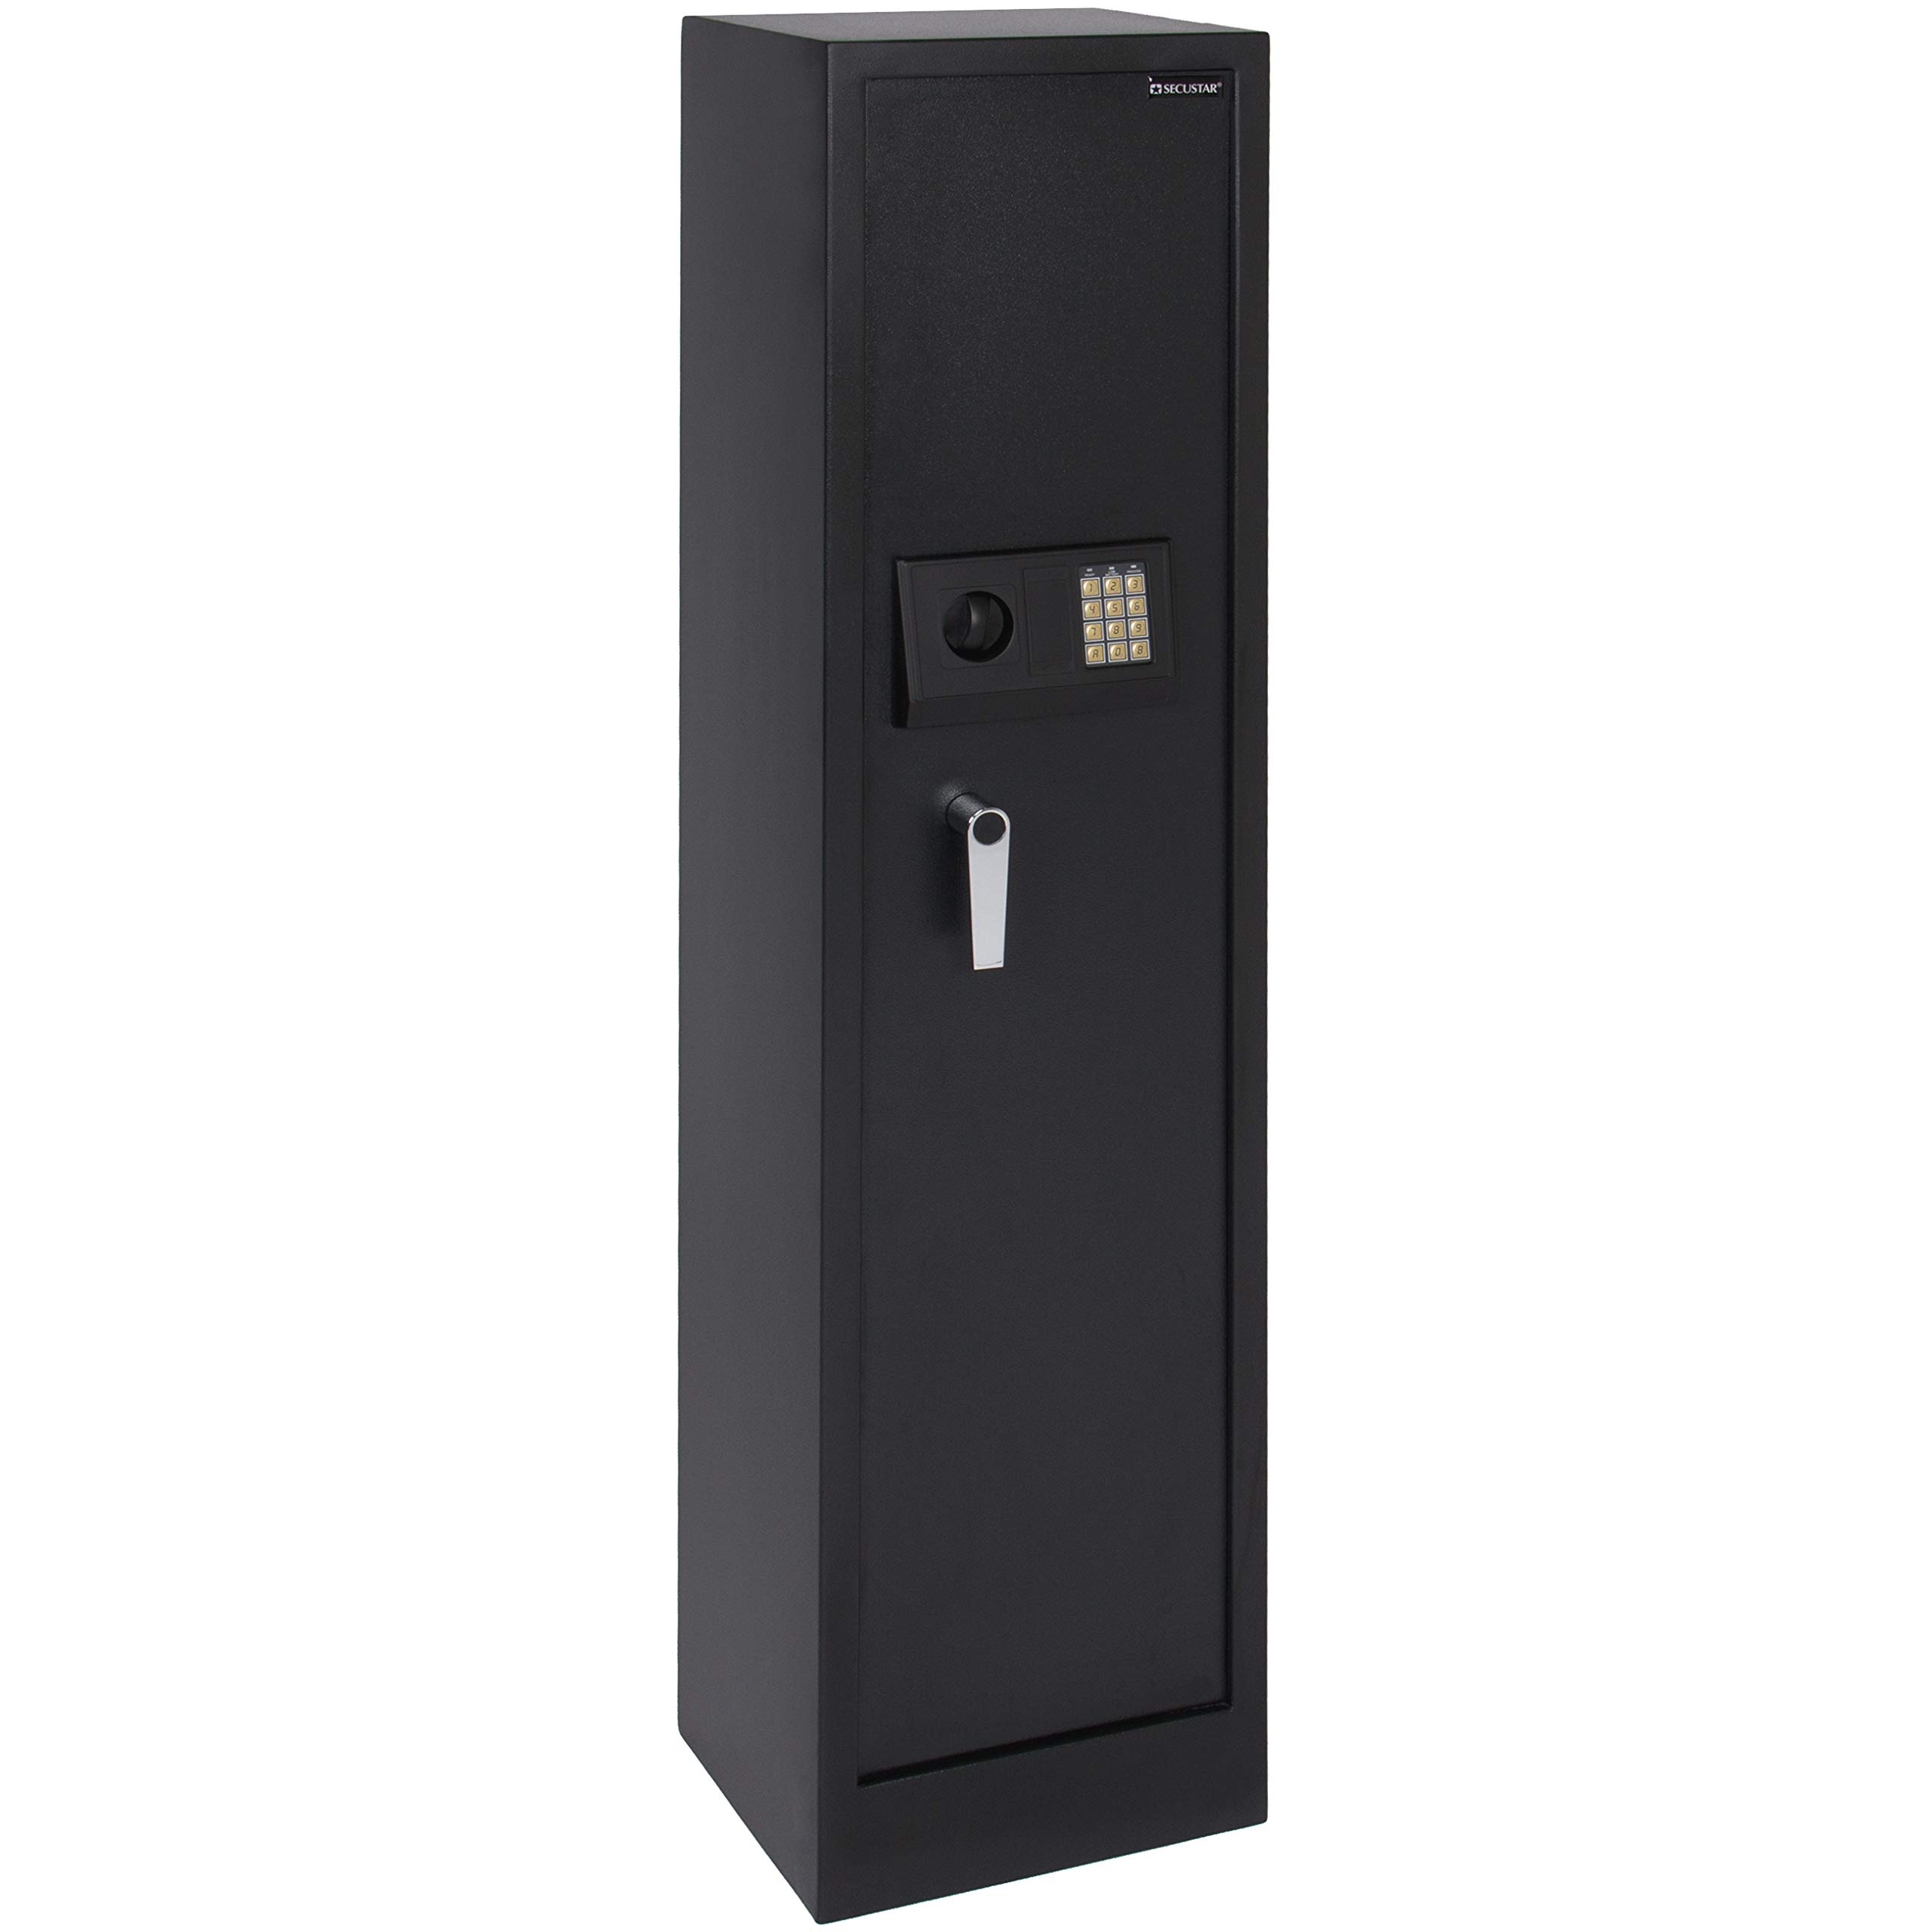 Best Choice Products Steel Electronic Storage Safe for Firearms, Valuables w/Digital Keypad, Keys, Padded Interior by Best Choice Products